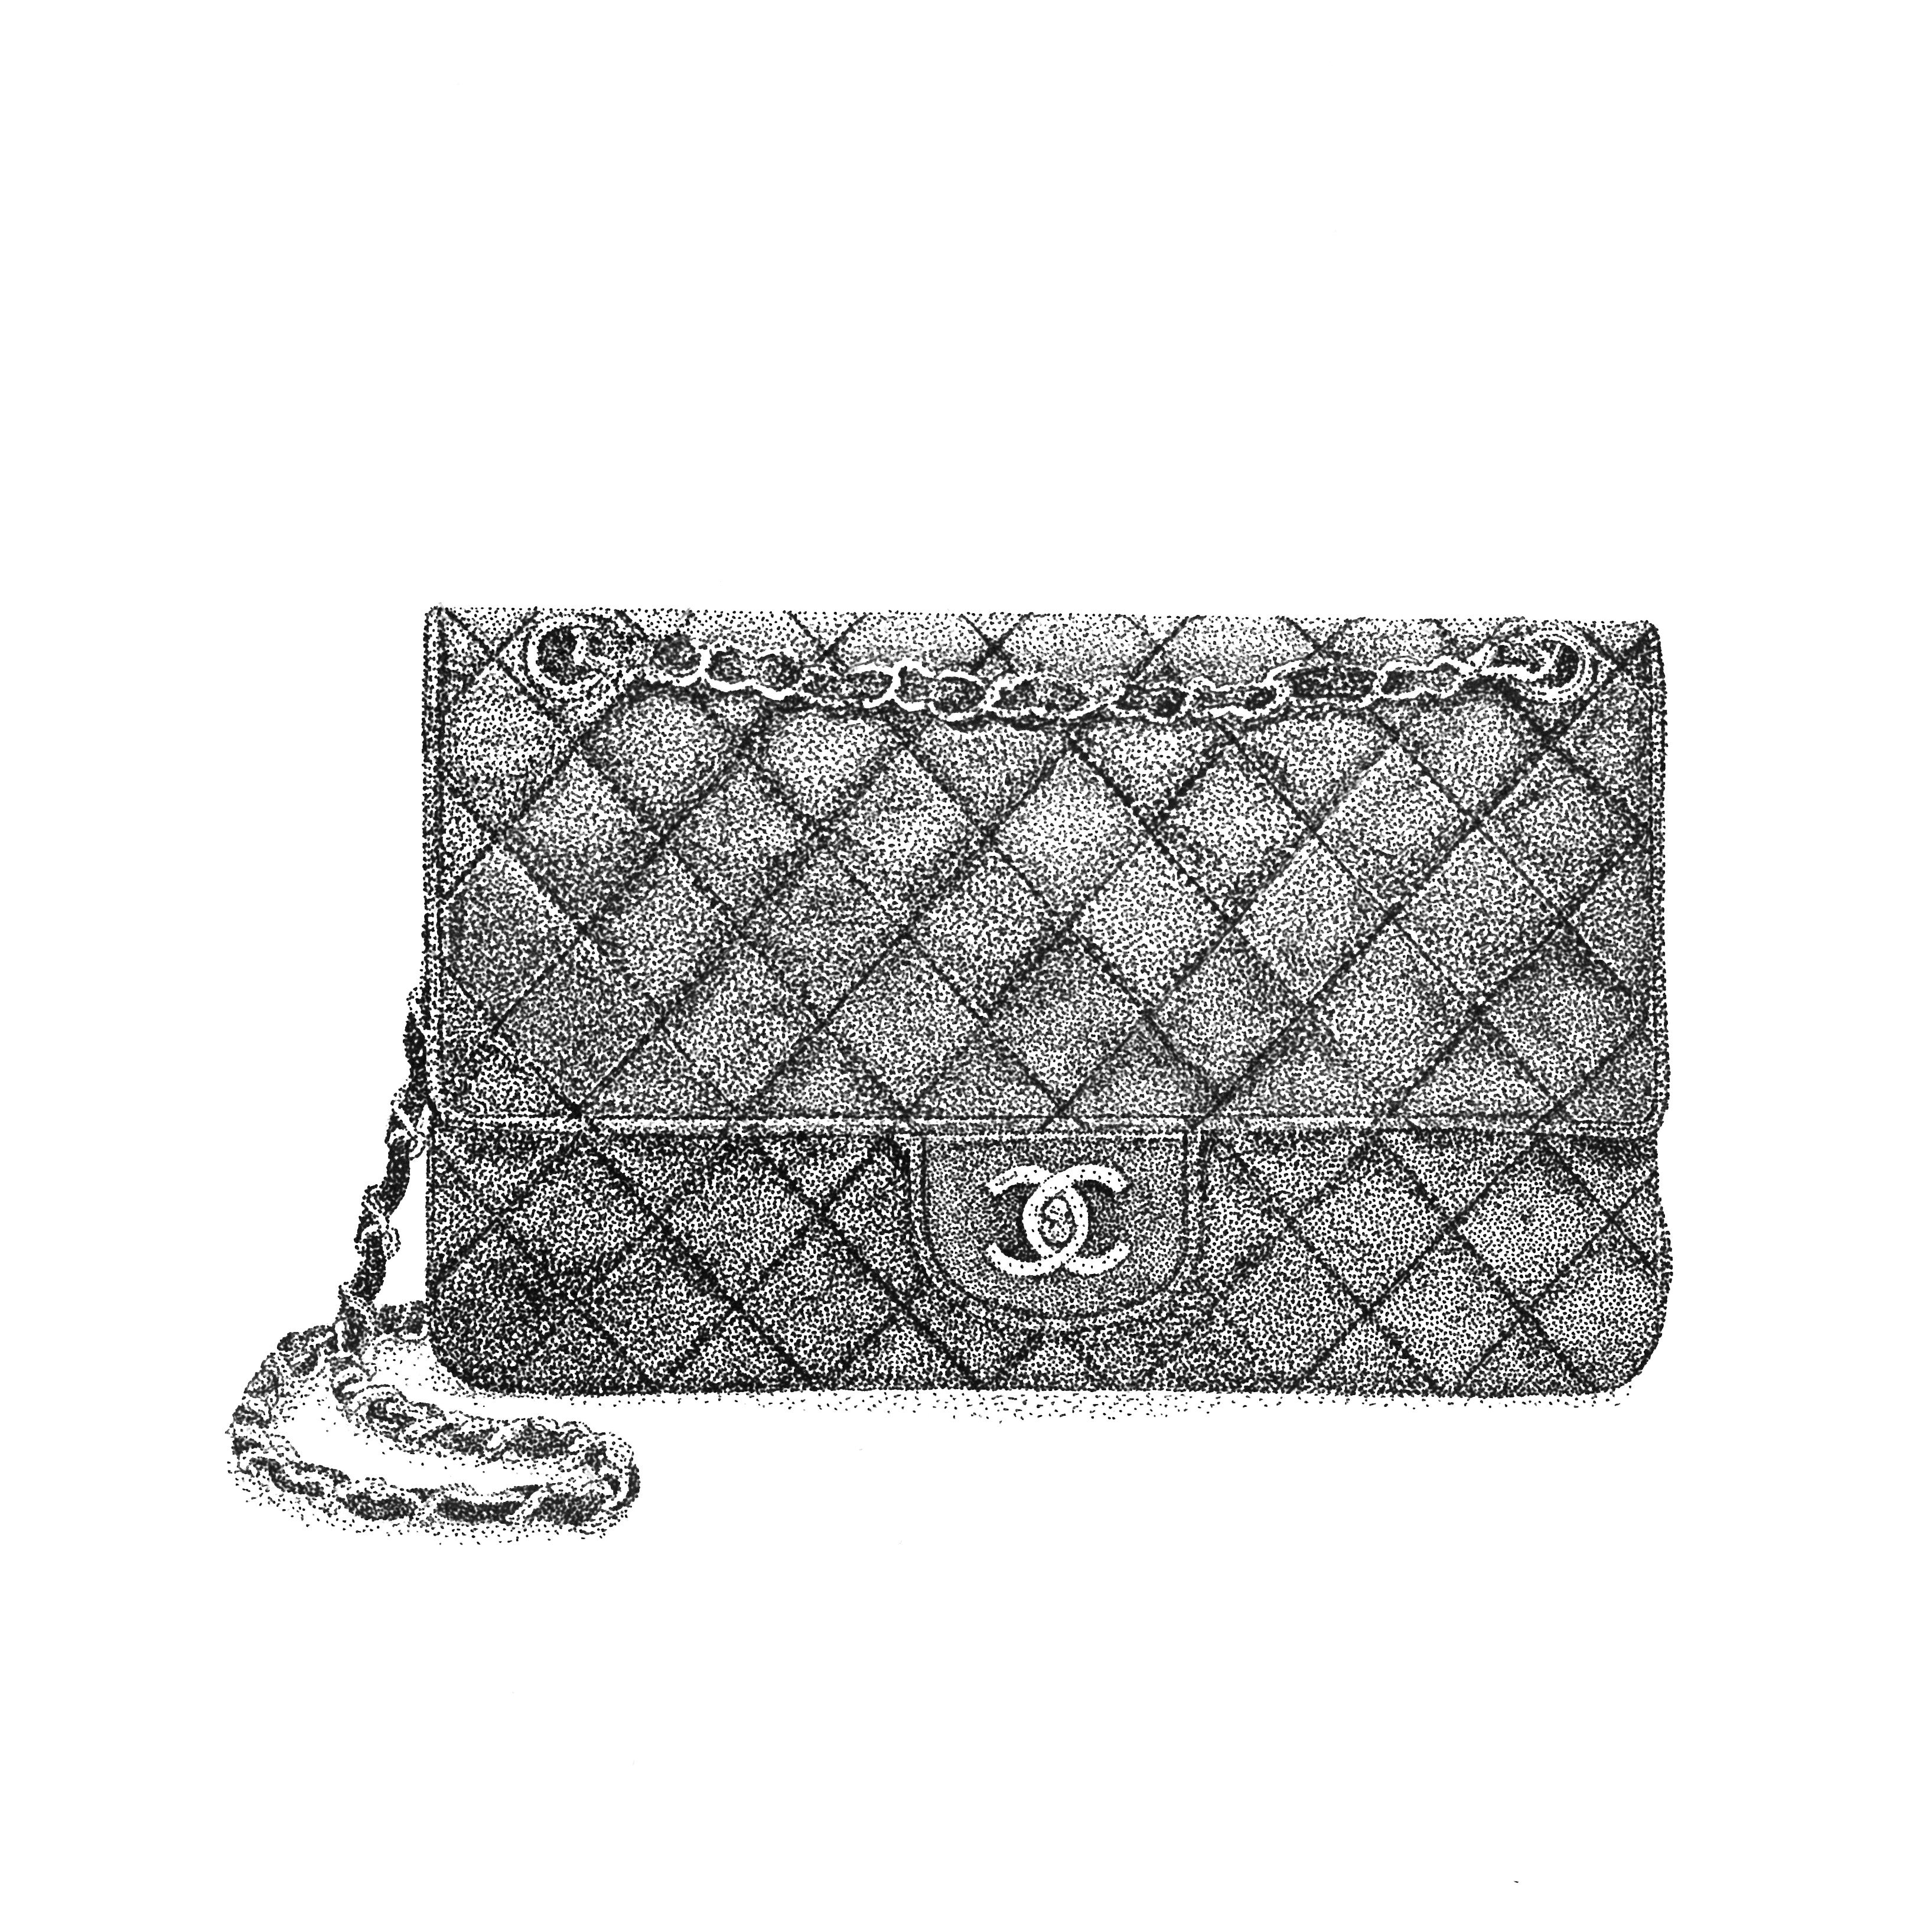 Chanel 2.55 (Original, framed)